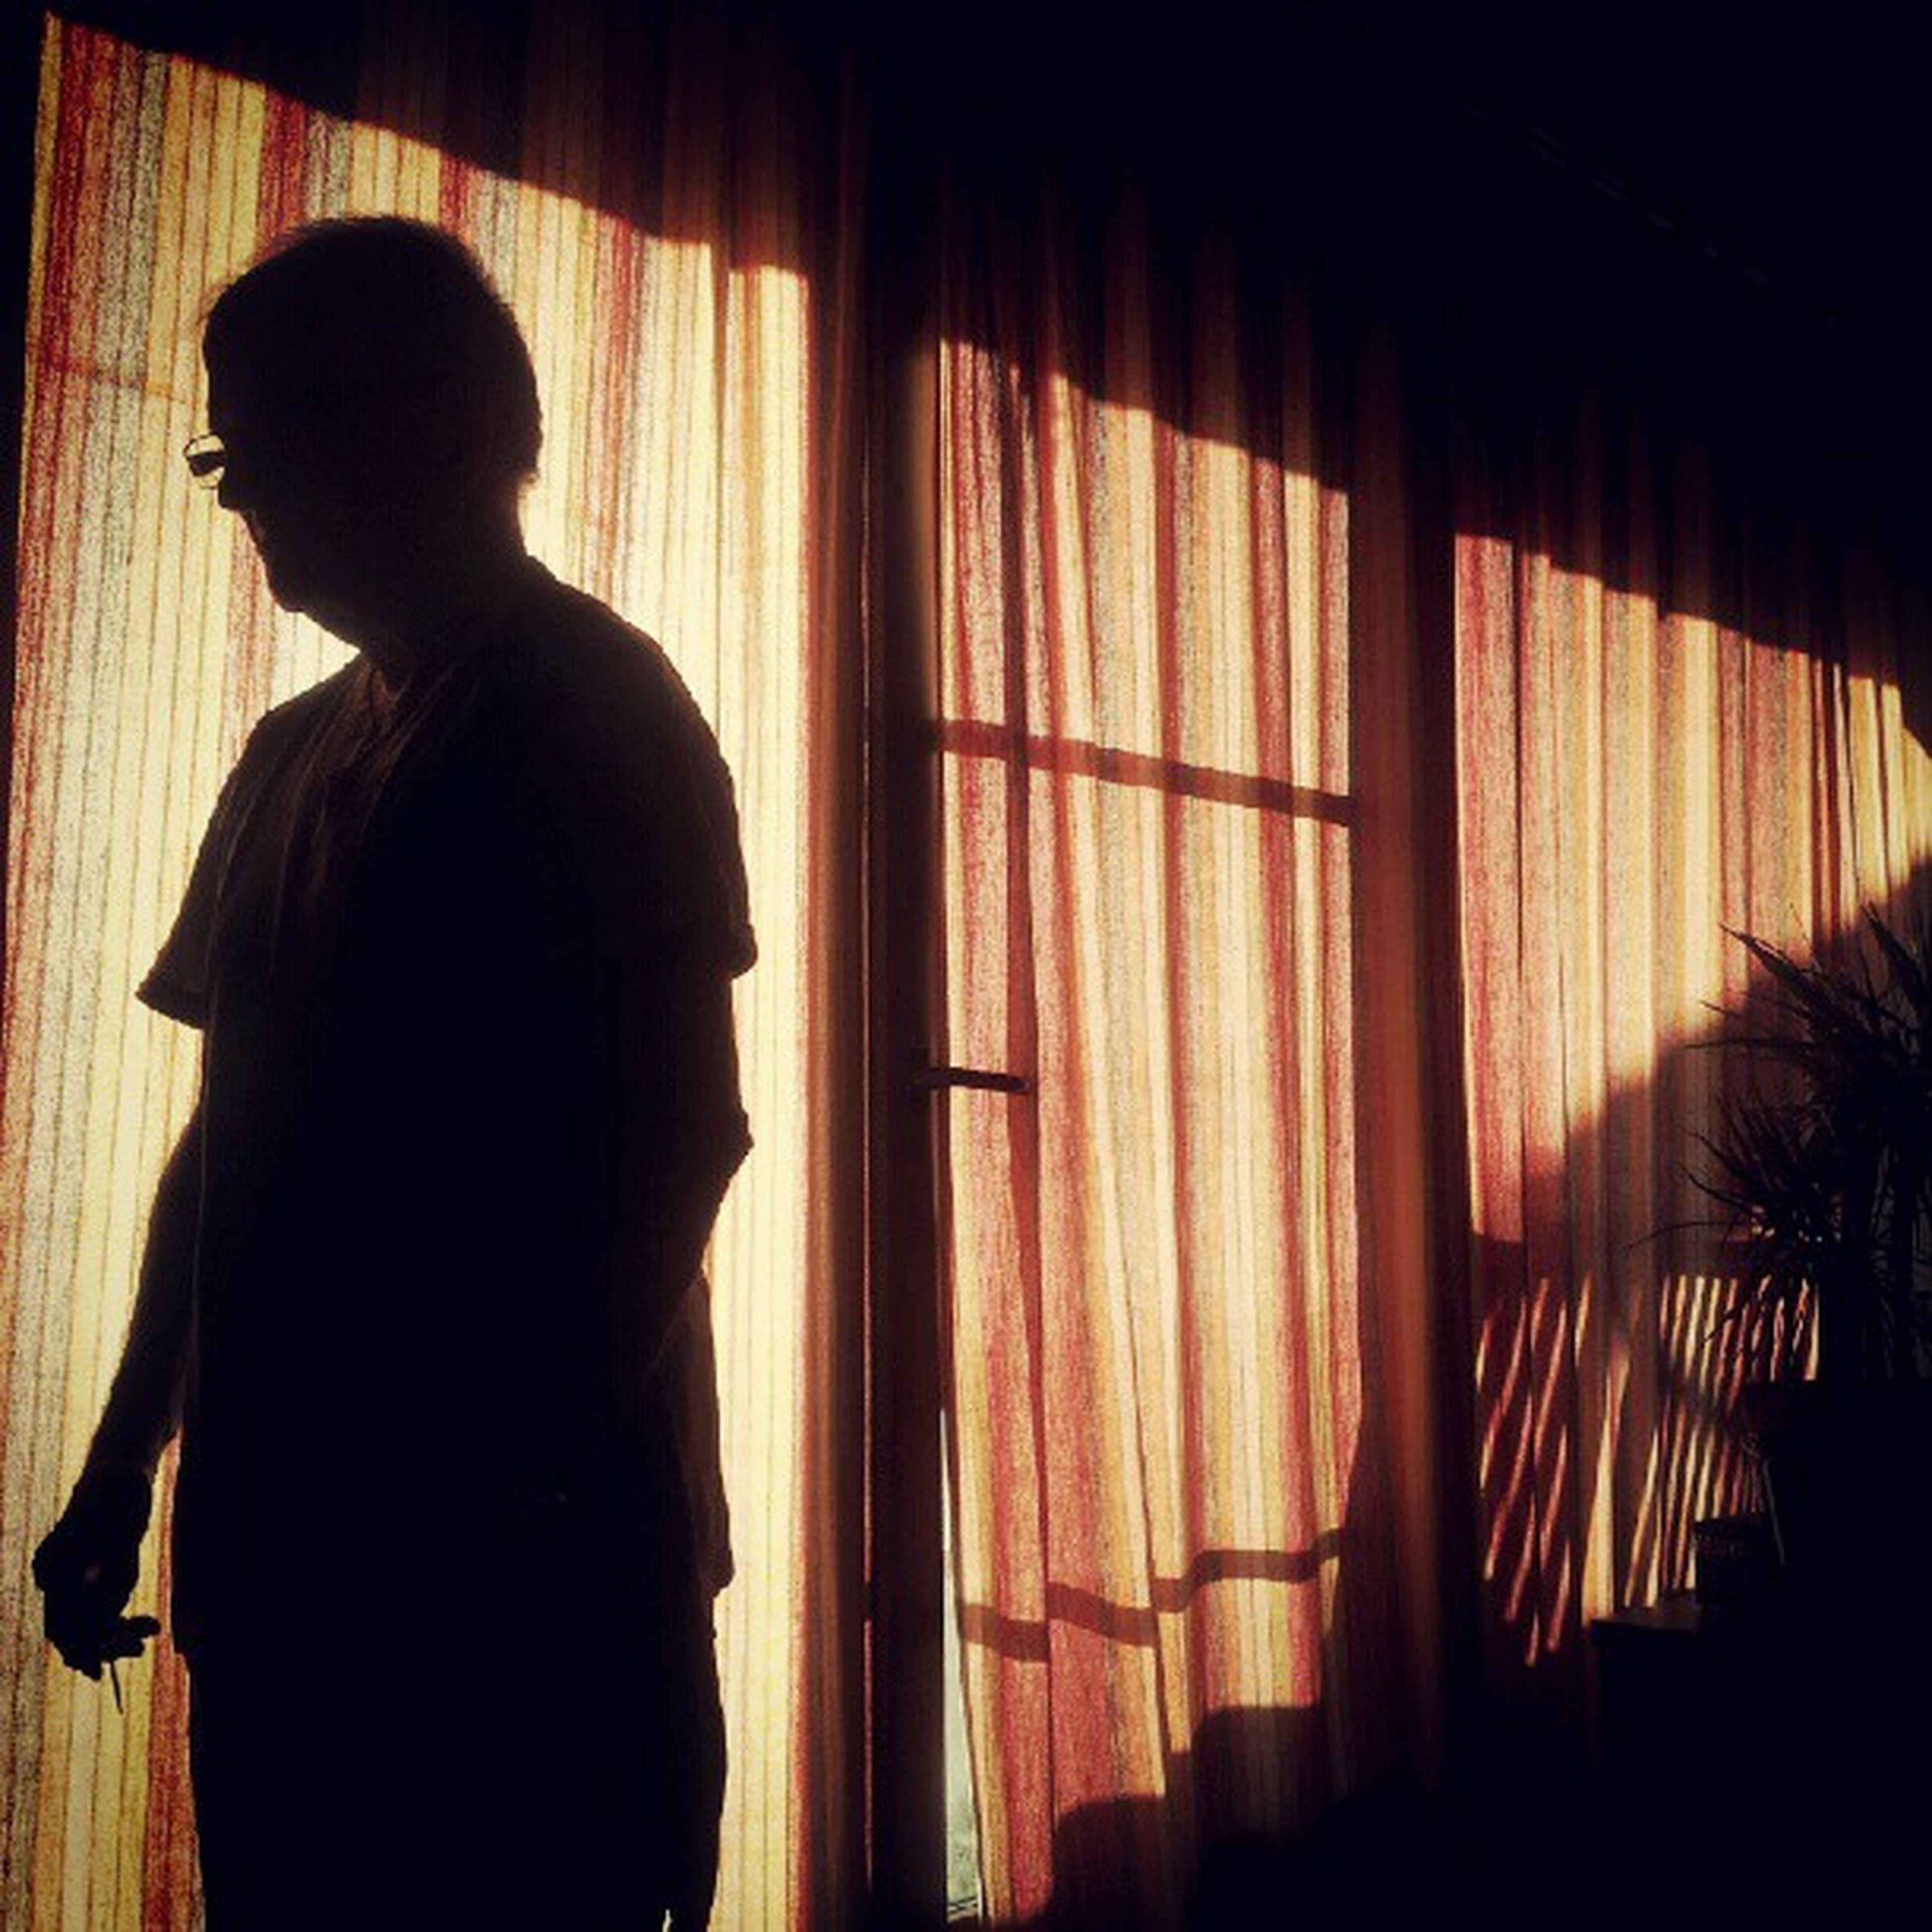 indoors, lifestyles, window, silhouette, home interior, leisure activity, side view, person, standing, curtain, sitting, domestic room, contemplation, rear view, sunlight, dark, relaxation, shadow